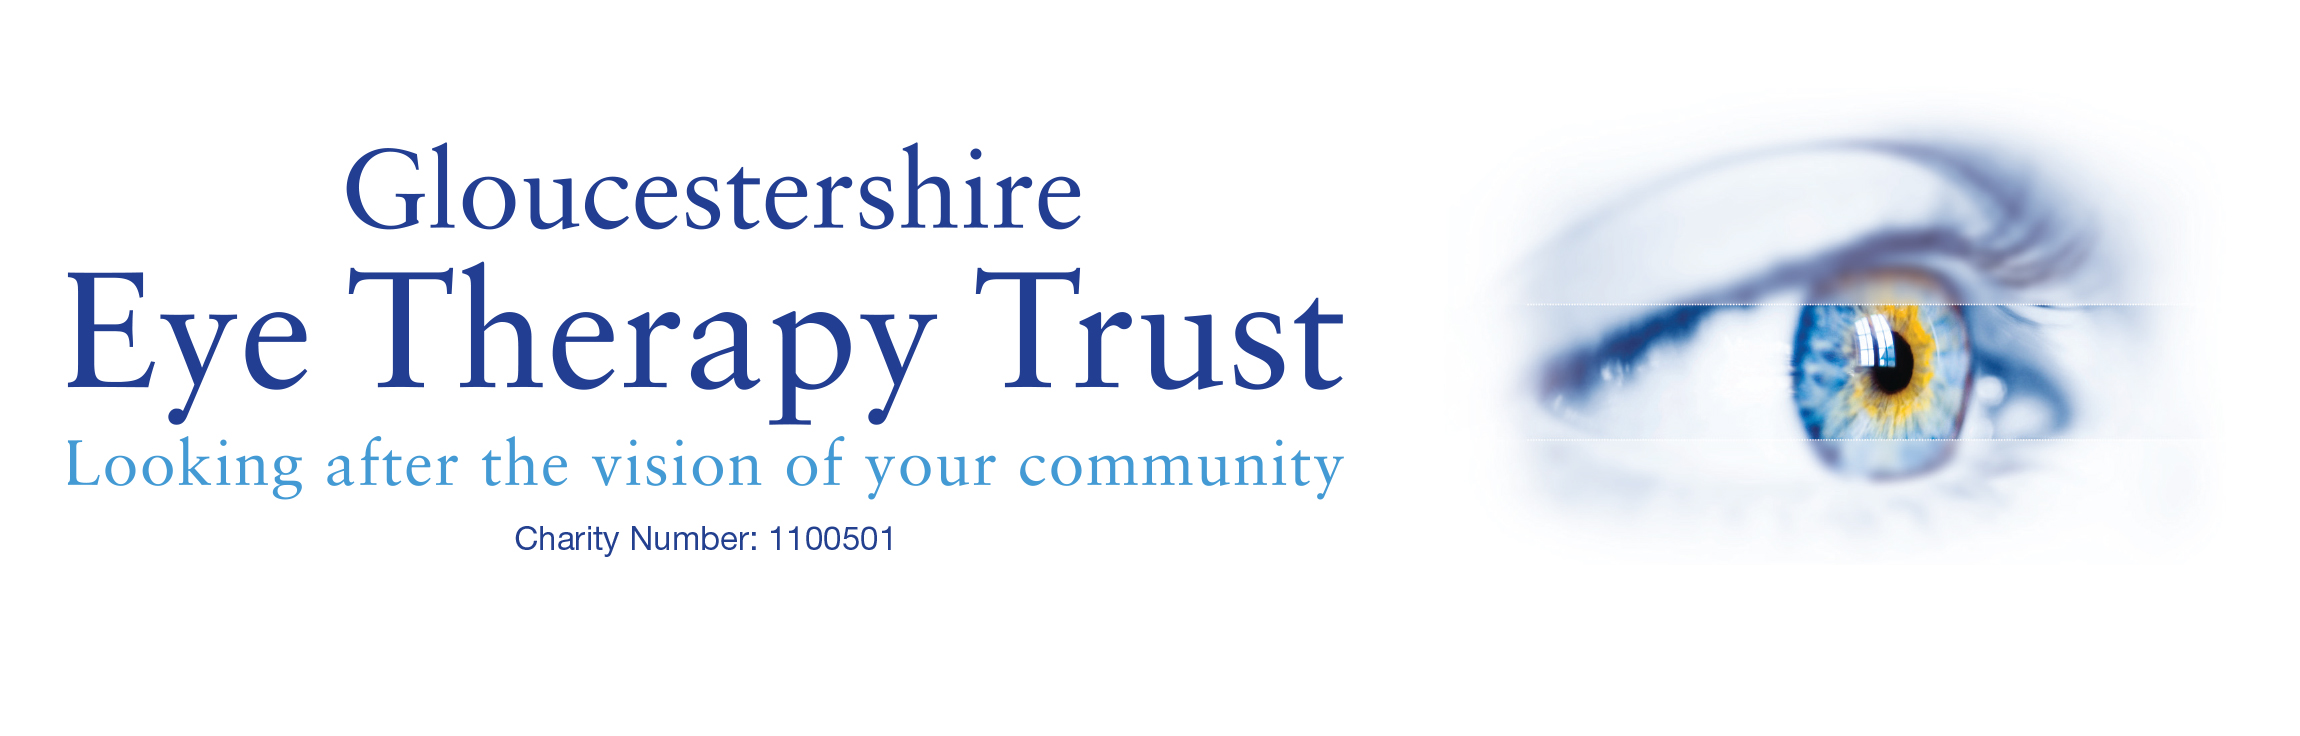 Gloucestershire Eye Therapy Trust